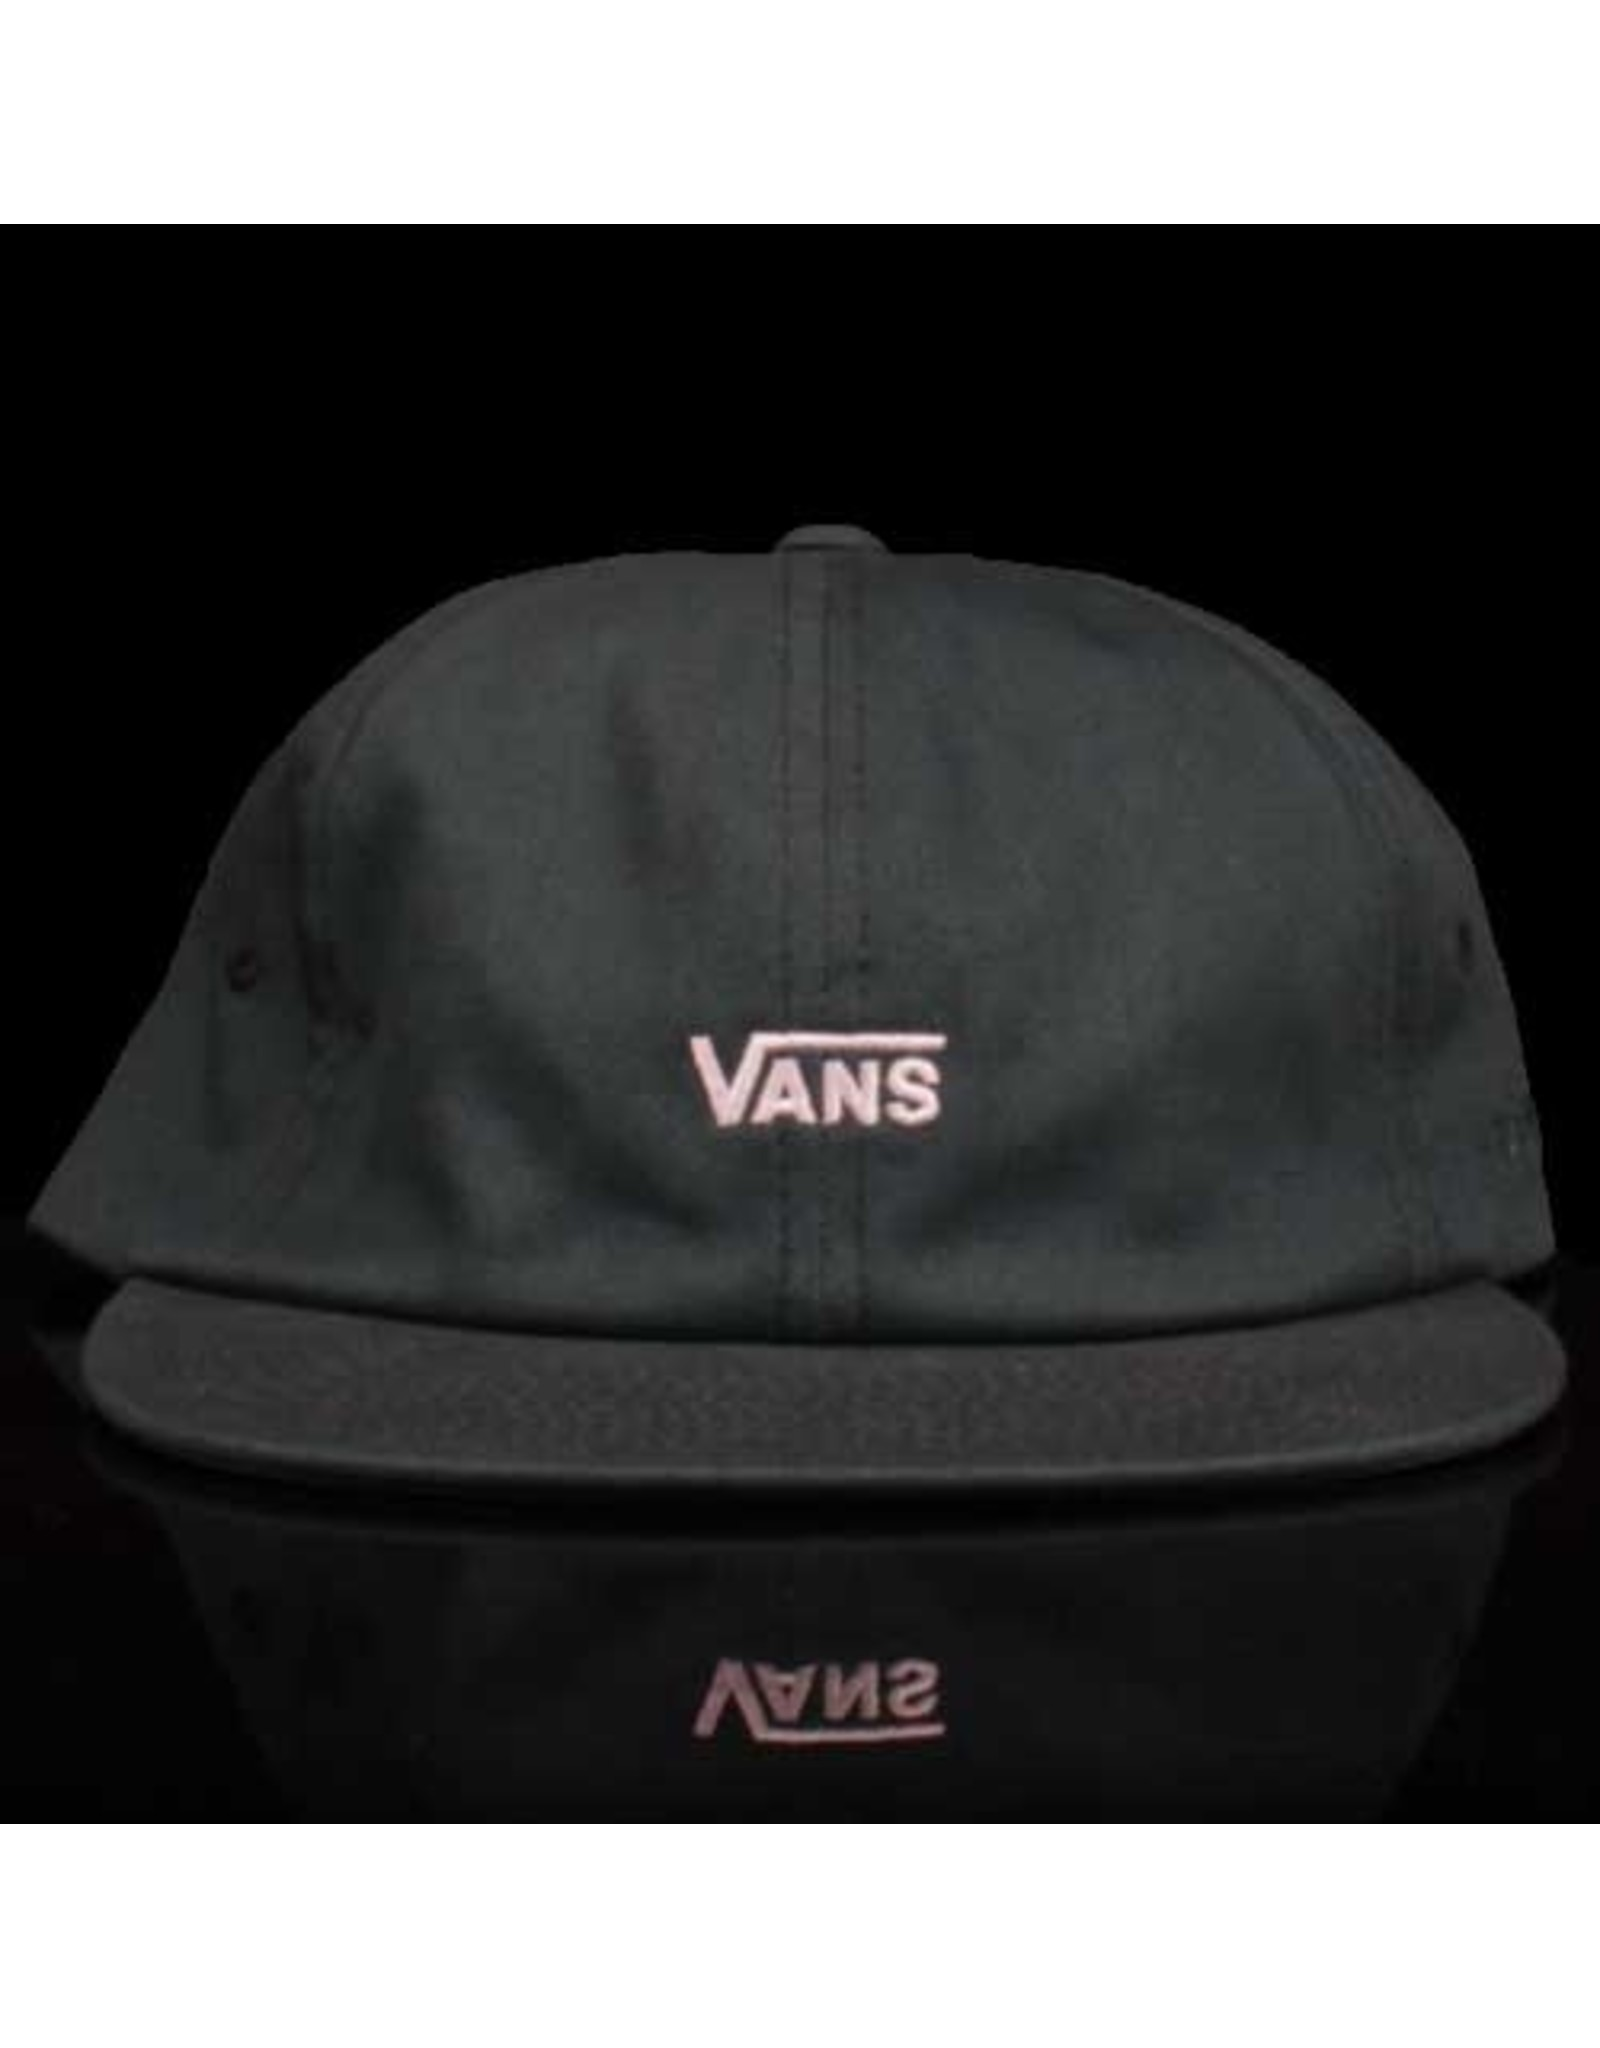 VANS Vans Hat Jockey 6 Panel Strapback Green